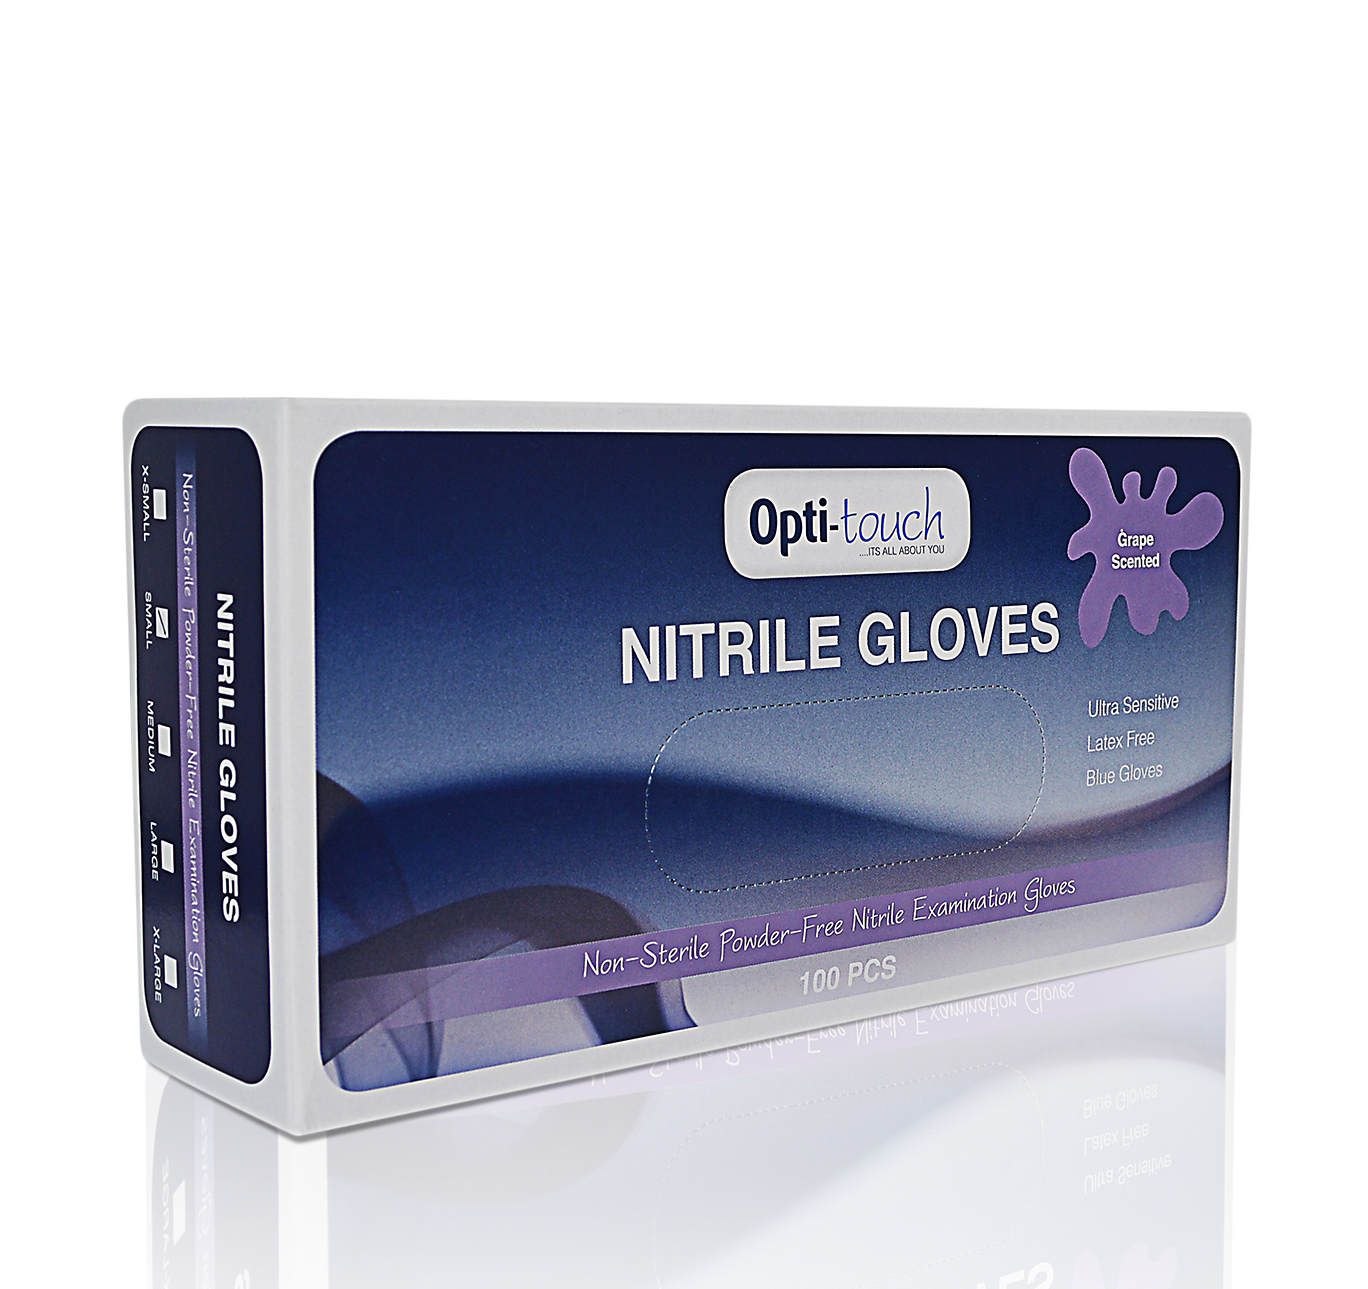 Nitrile Non-Sterile Powder-Free Gloves